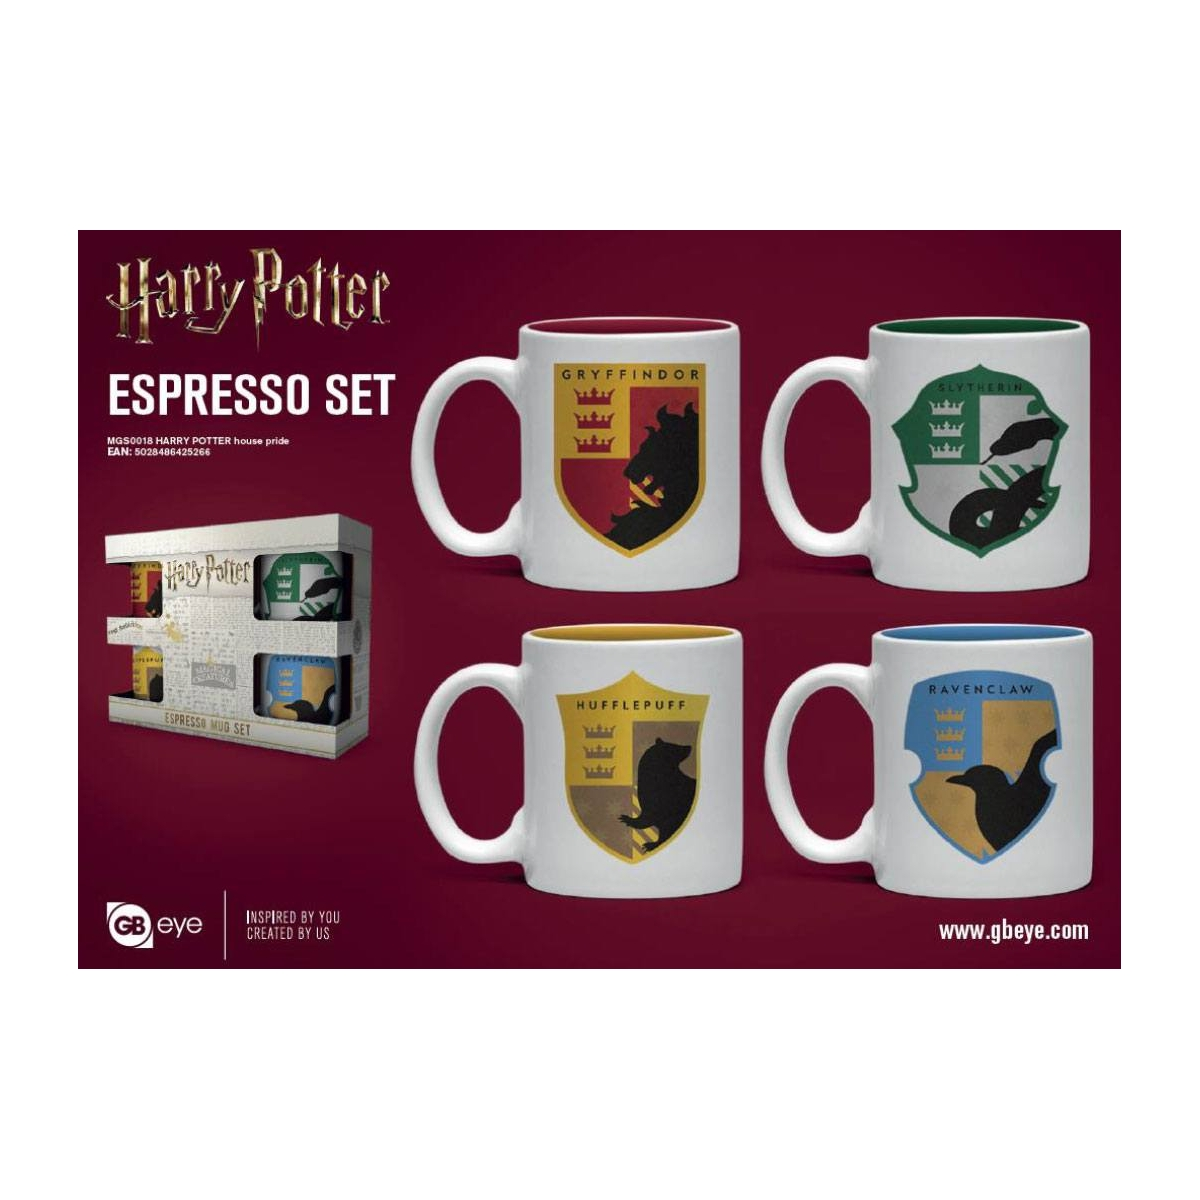 HARRY POTTER PACK DE 4 TAZAS ESPRESSO HOUSEPRIDE